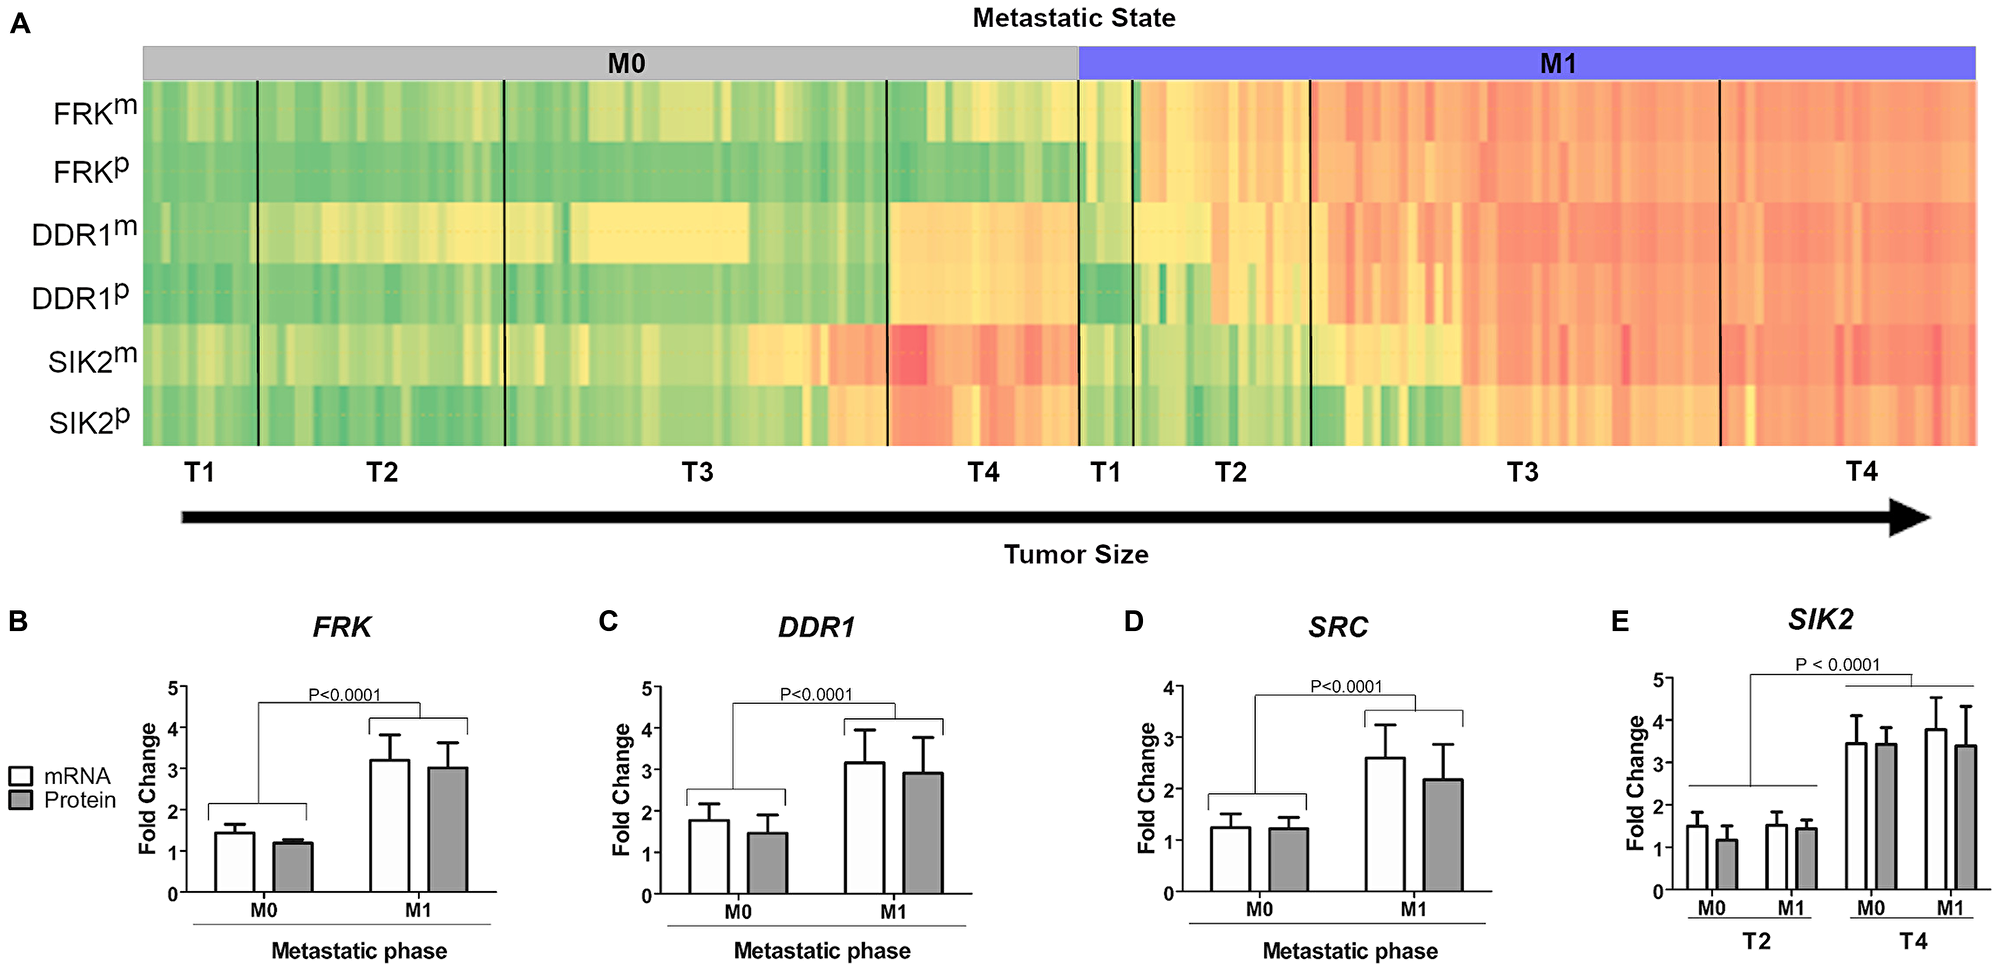 Correlation between kinase expression levels and tumor stage in patient samples.